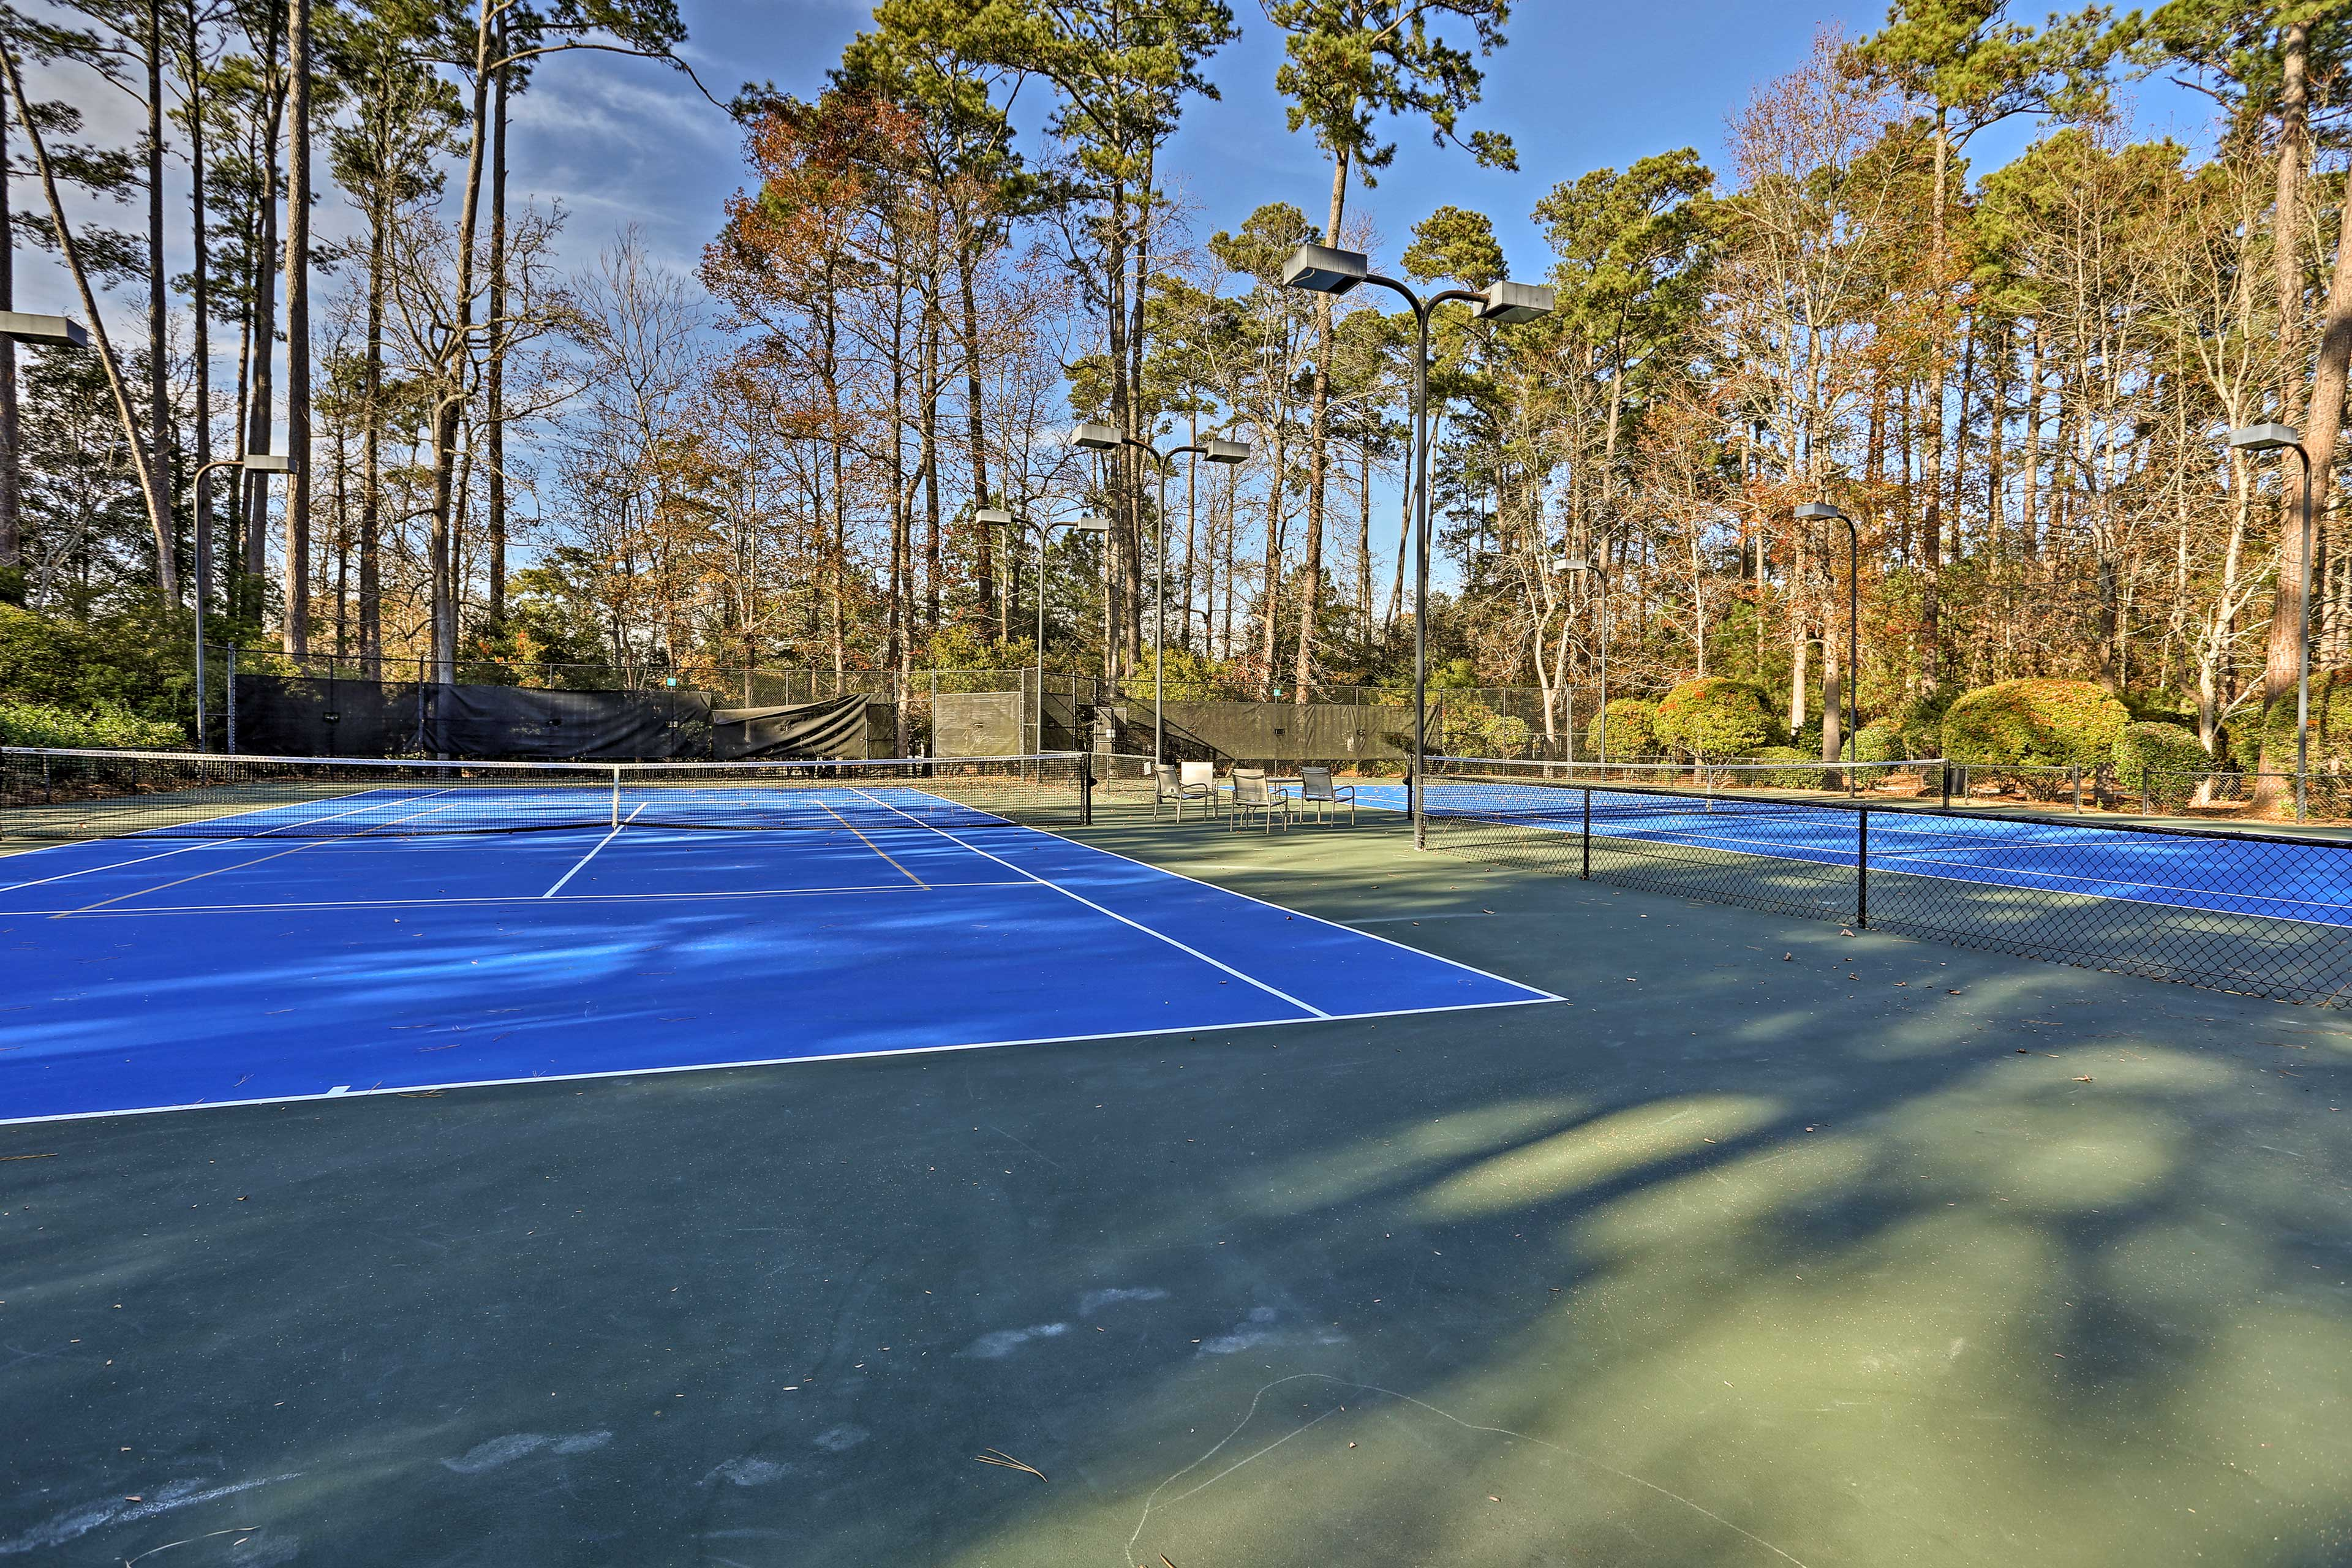 Play a friendly game of tennis with loved ones.